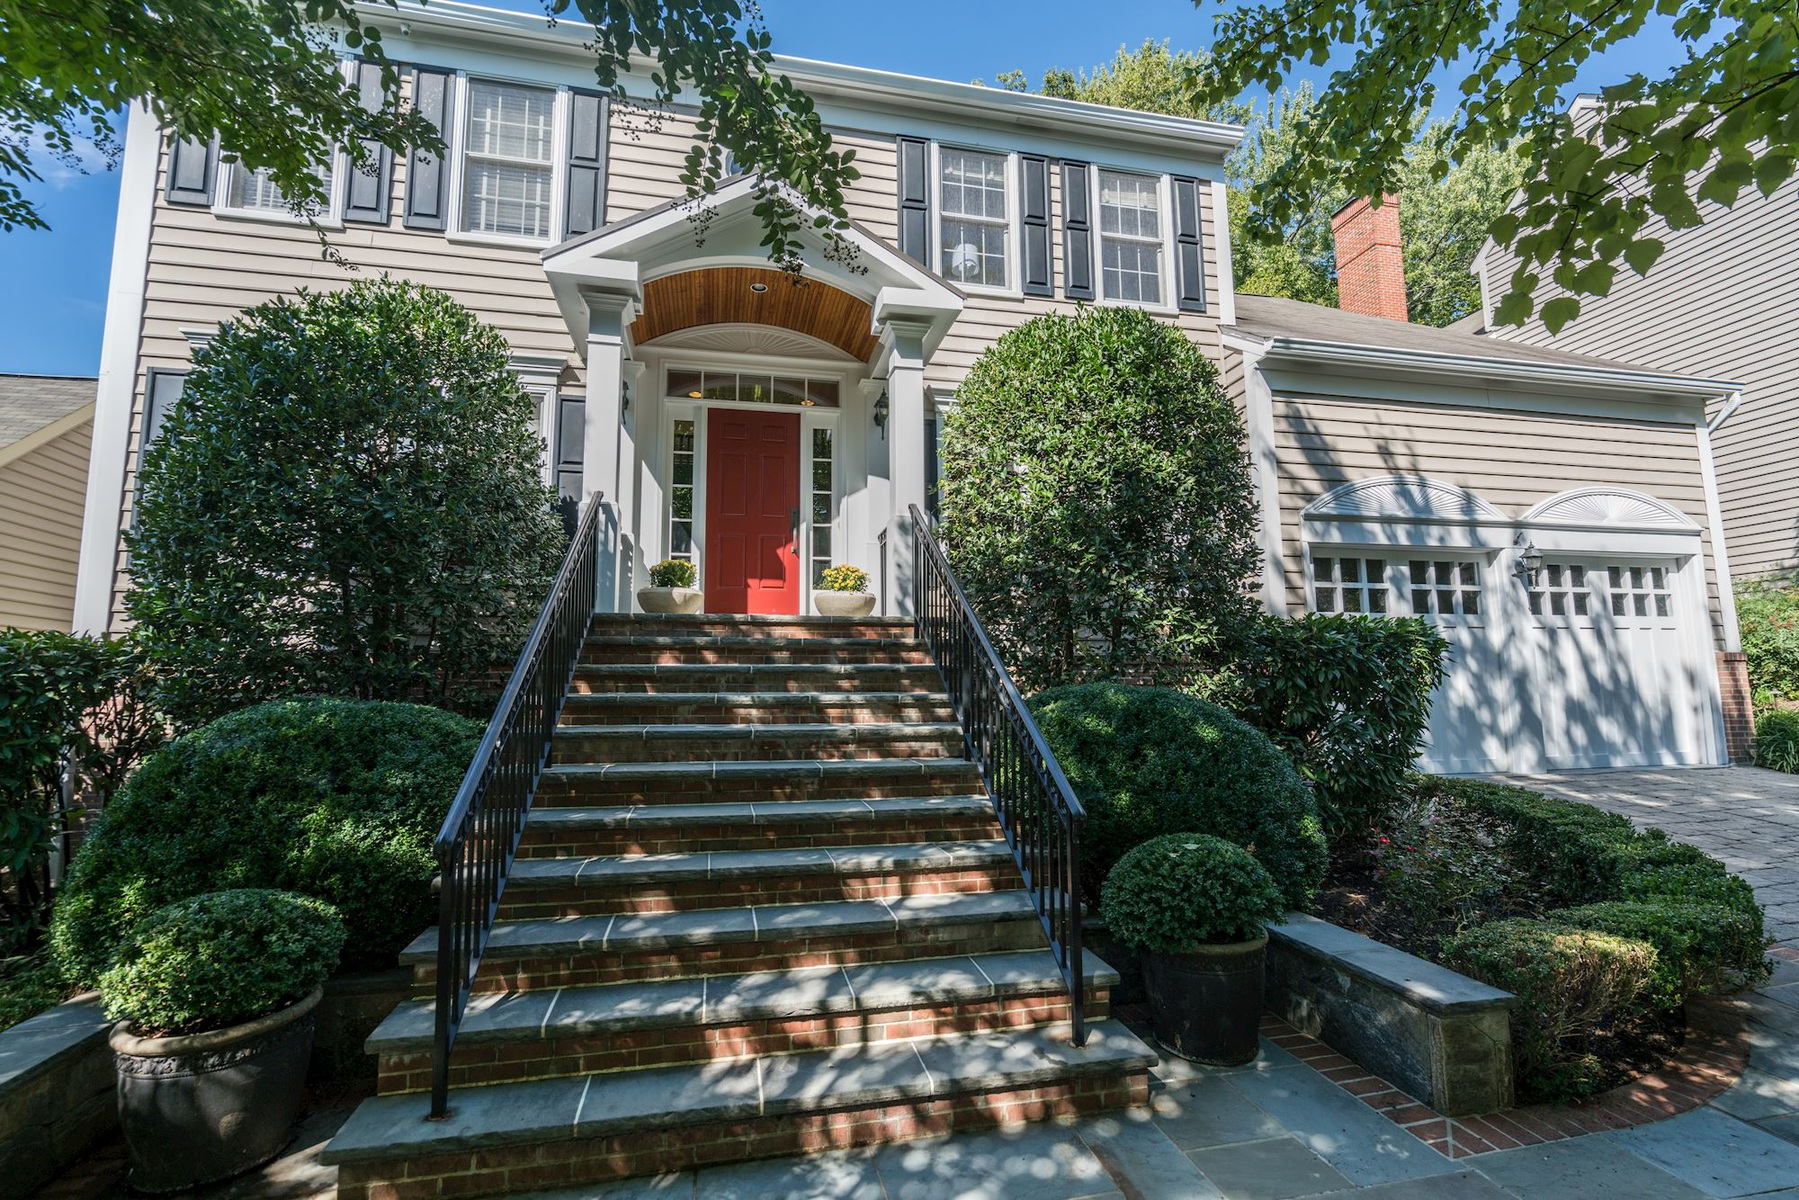 Casa Unifamiliar por un Venta en Quaker Hill 1263 Dartmouth Ct Alexandria, Virginia 22314 Estados Unidos